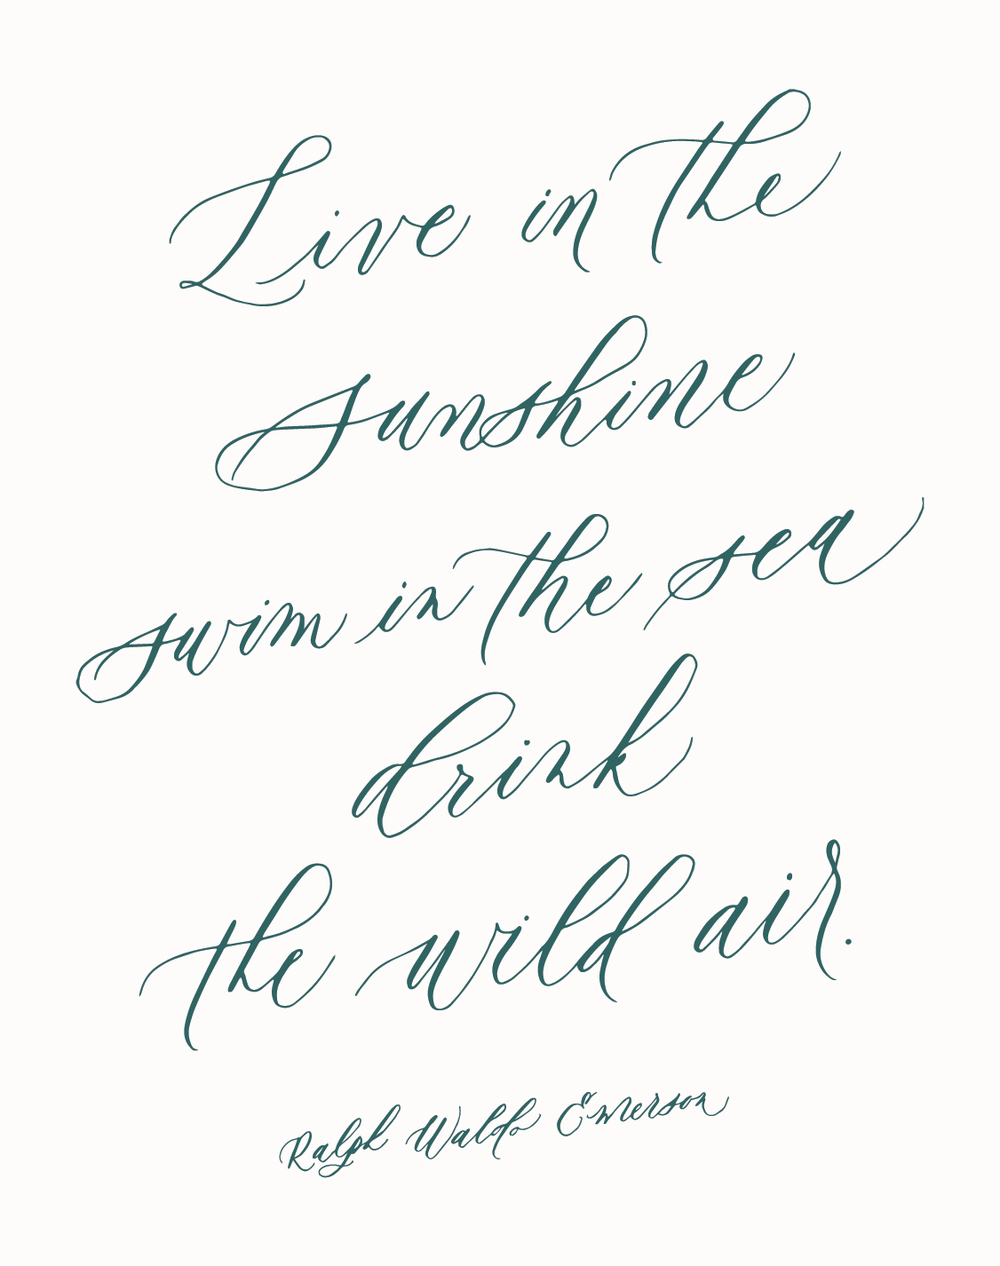 waldoquote-download.png